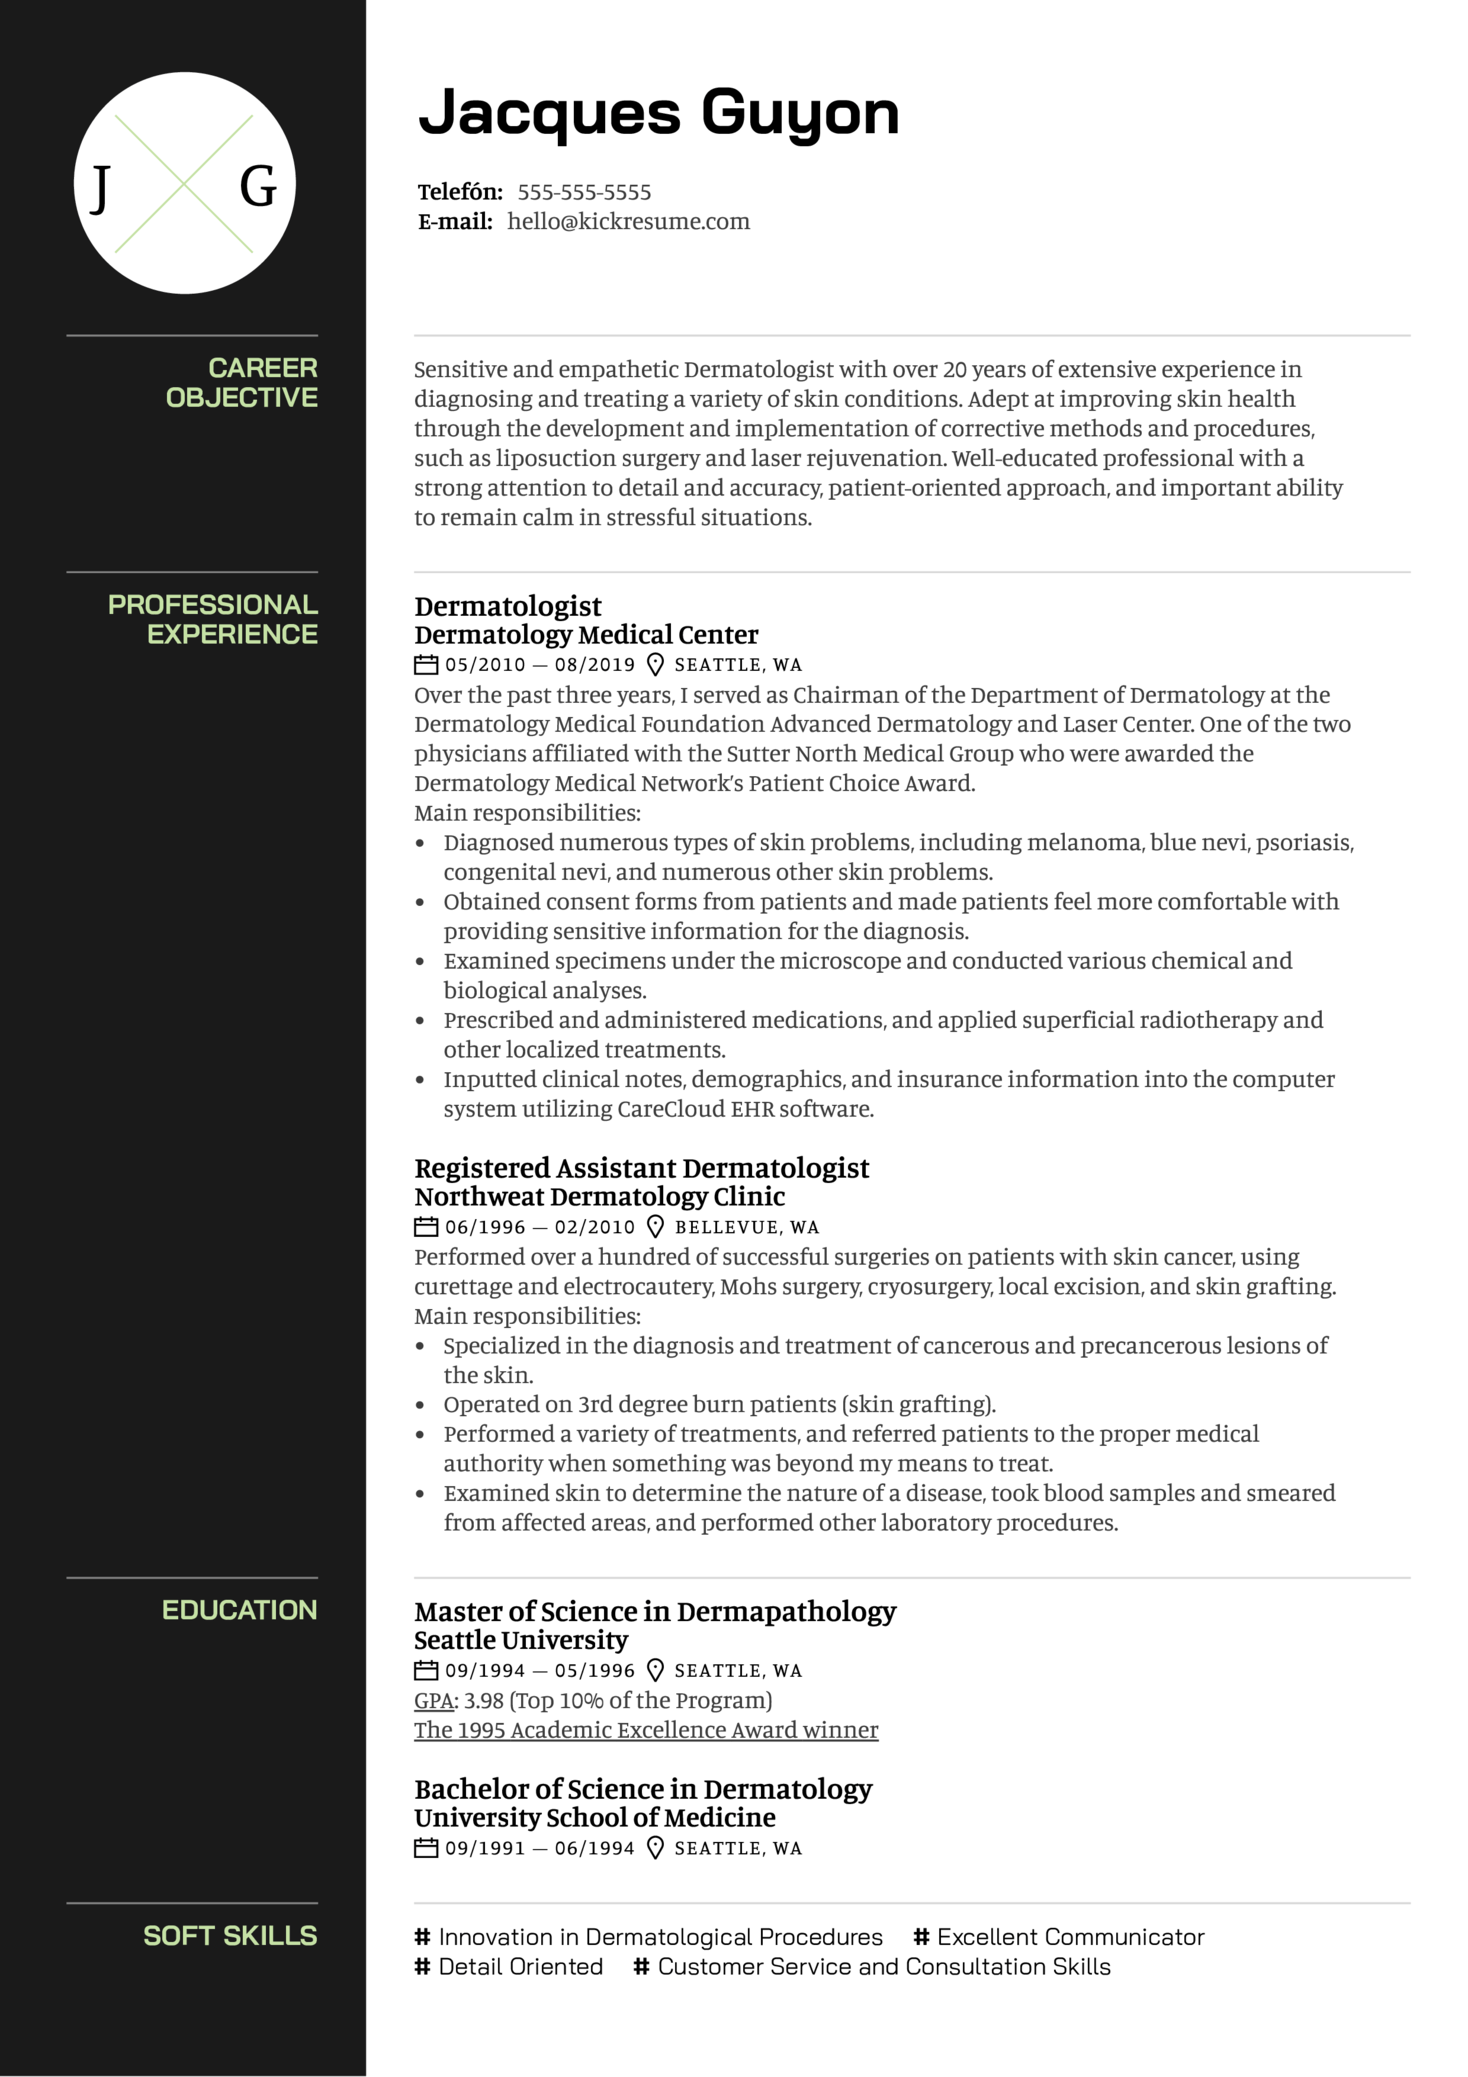 Dermatologist Resume Sample (parte 1)